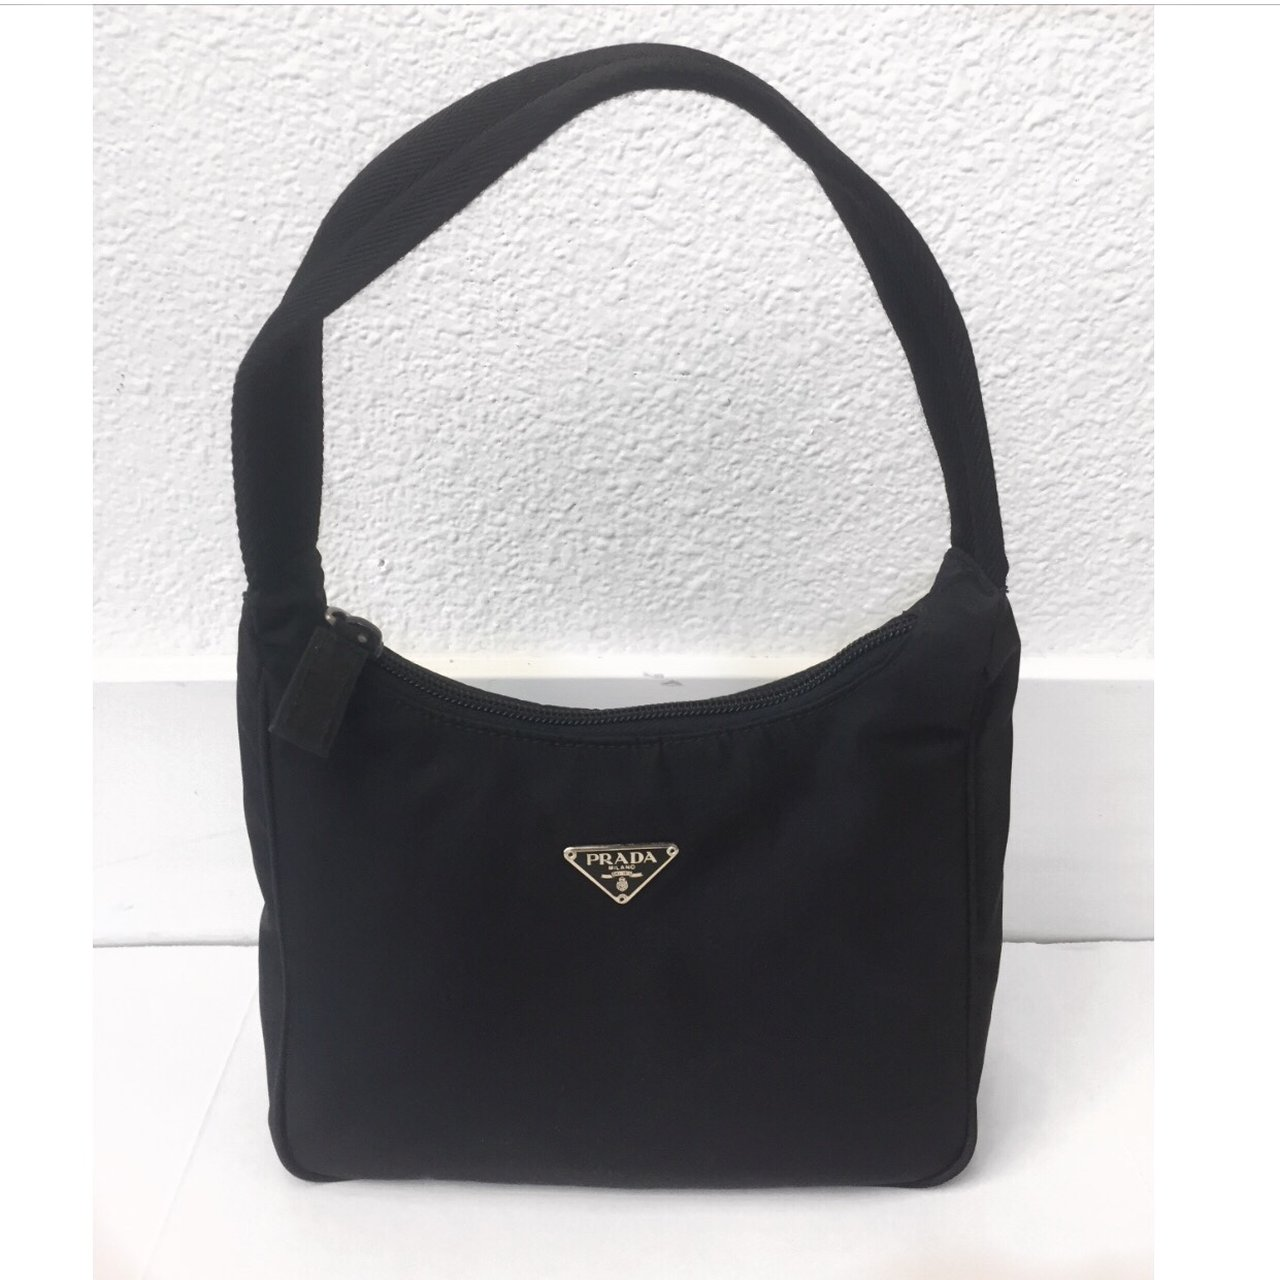 0cb7f77eb519f1 Authentic Vintage 2000s Rare Prada Mini Hobo Aka The Kendall Jenner Bag  It's In Brand New